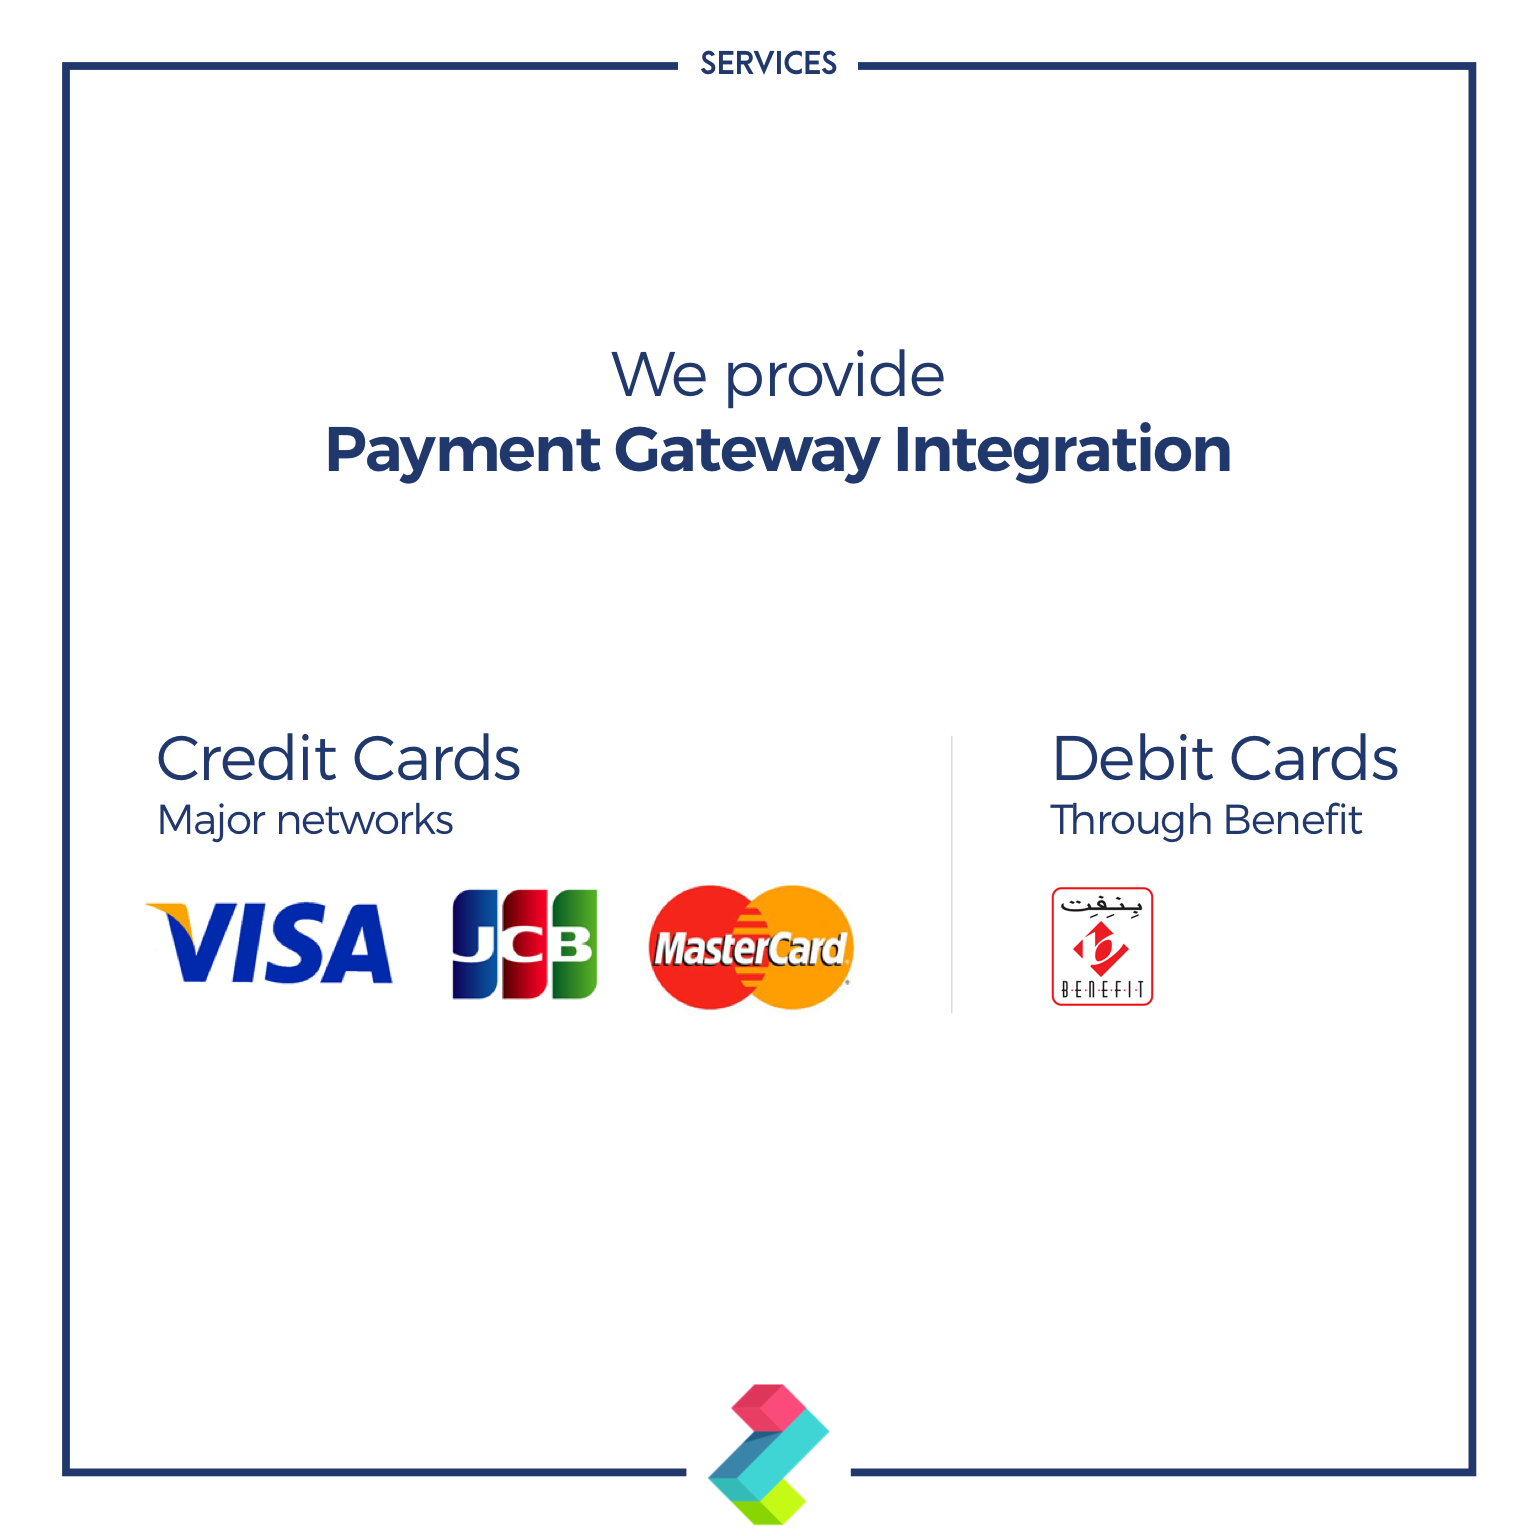 For any payment gateway inquiries please contact us, we